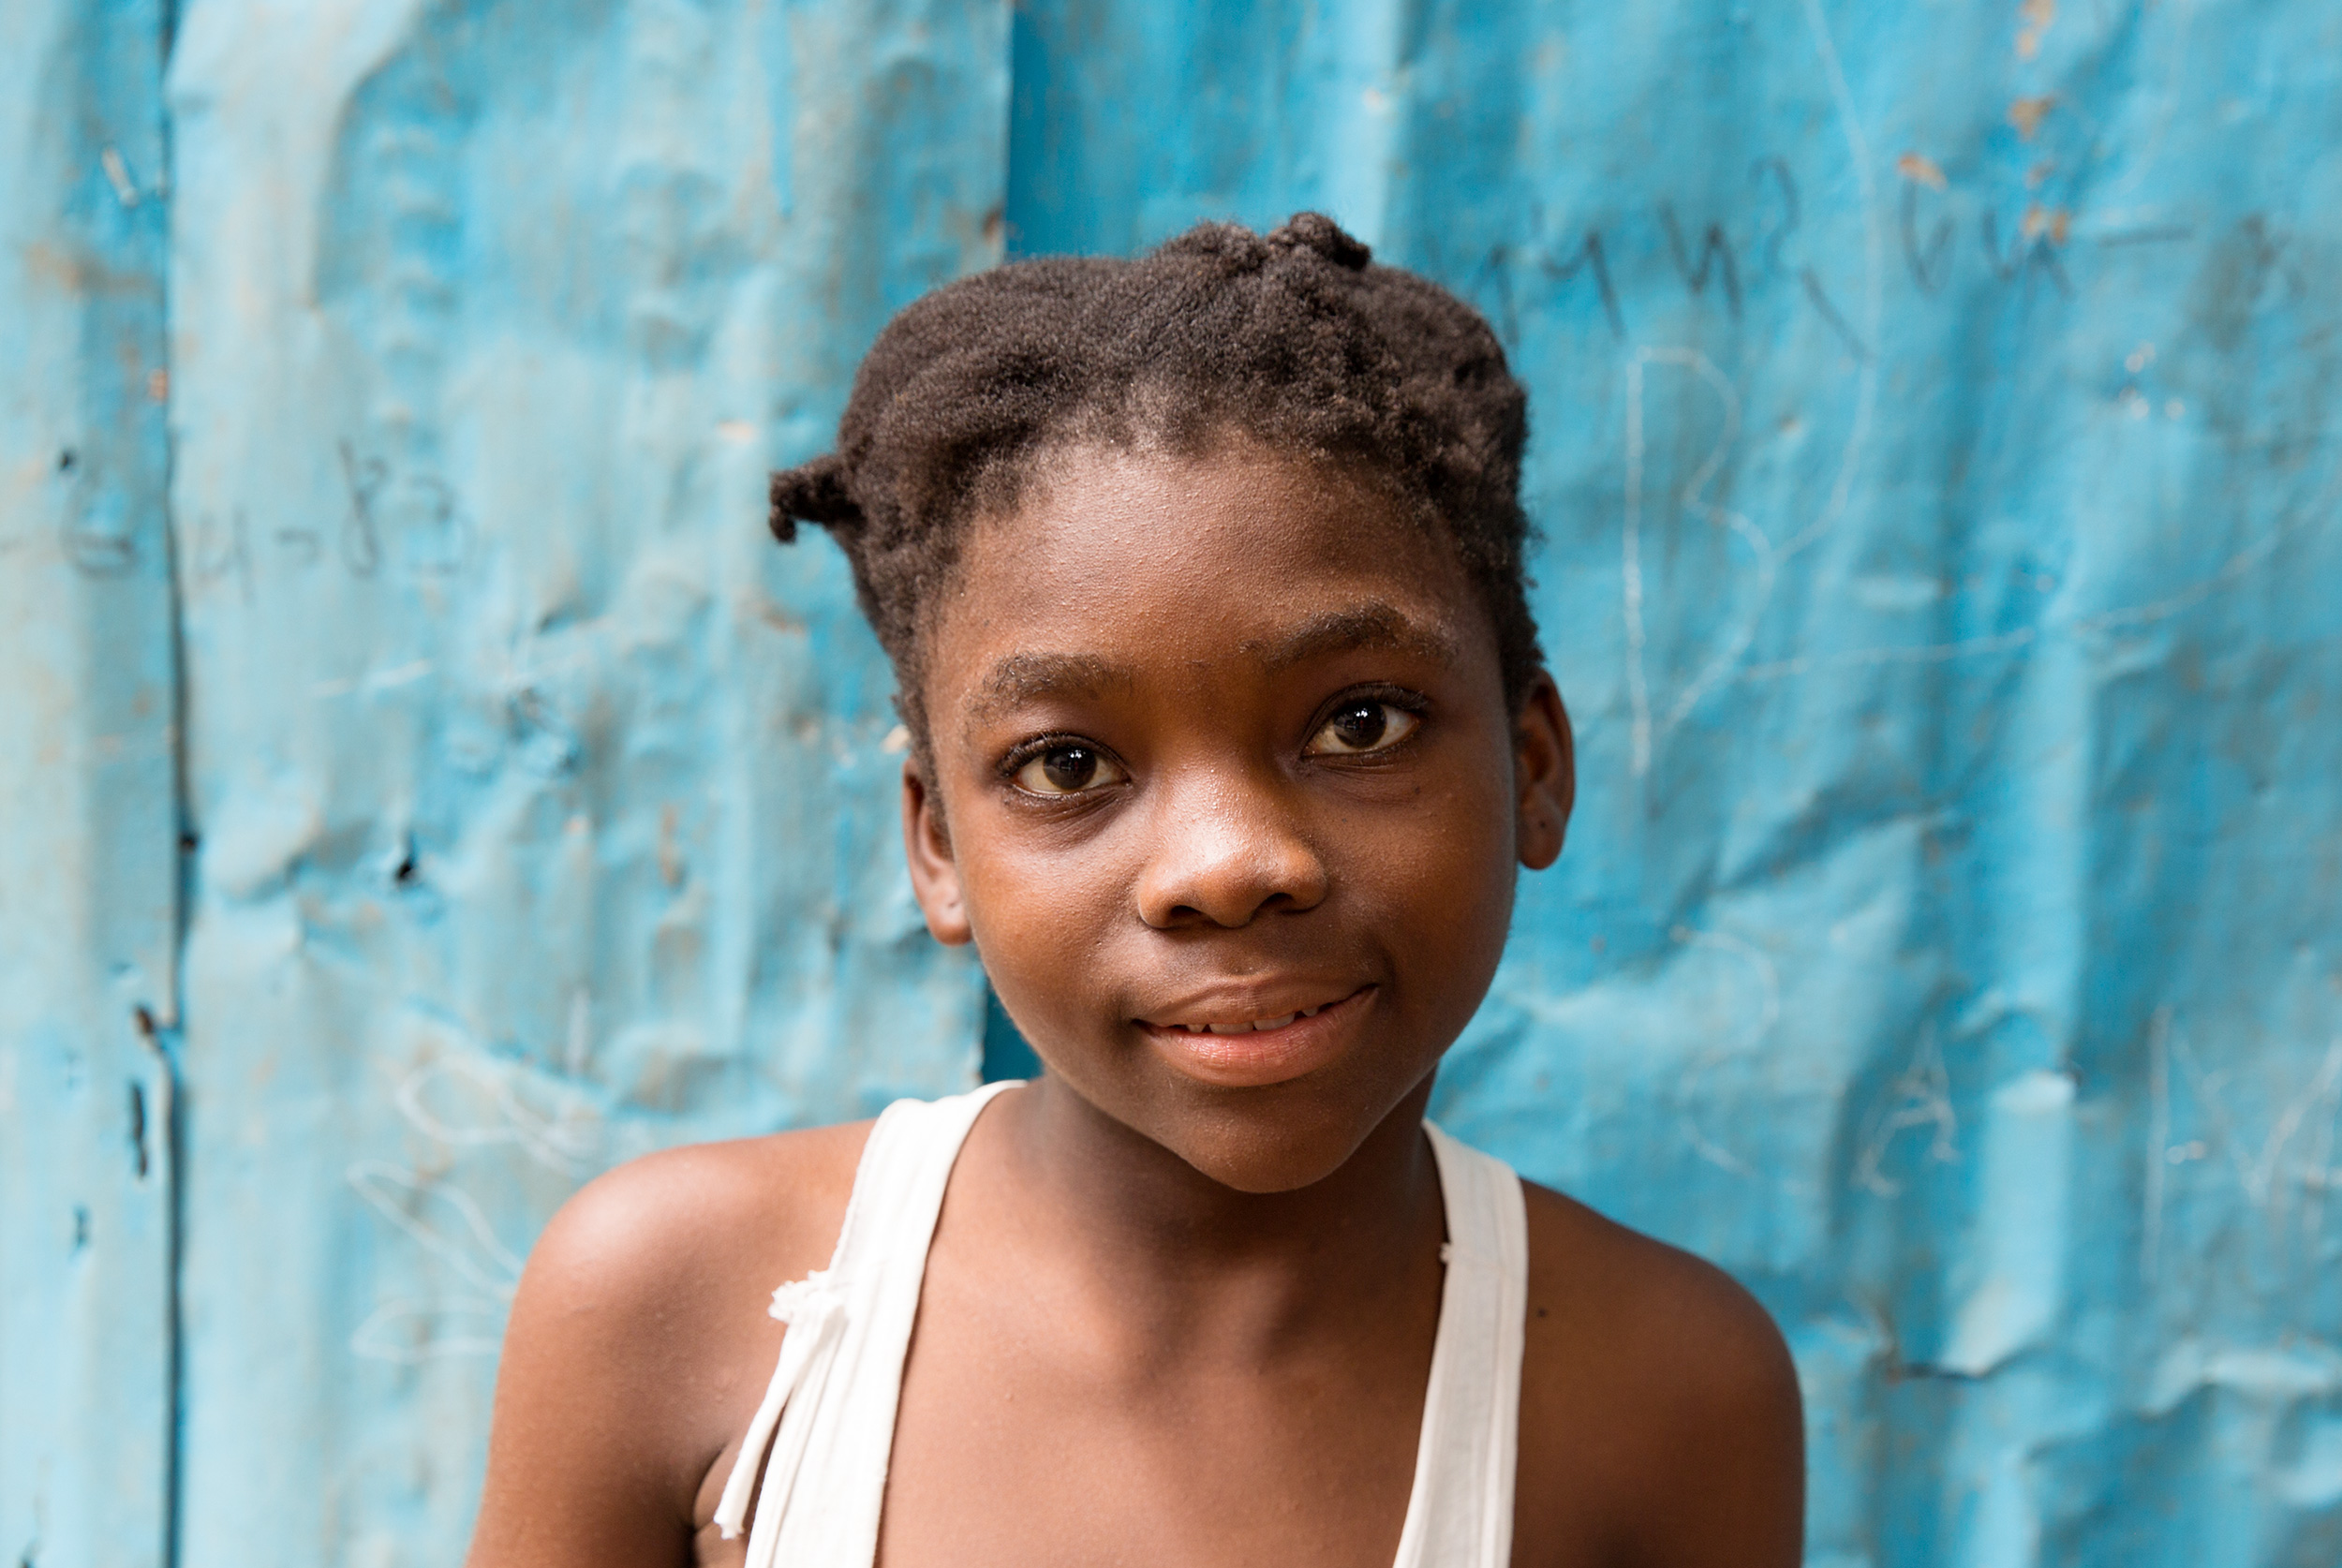 TRAVEL_HAITI_portrait_photographer_ngo_girl_haitiangirl_0622_WB